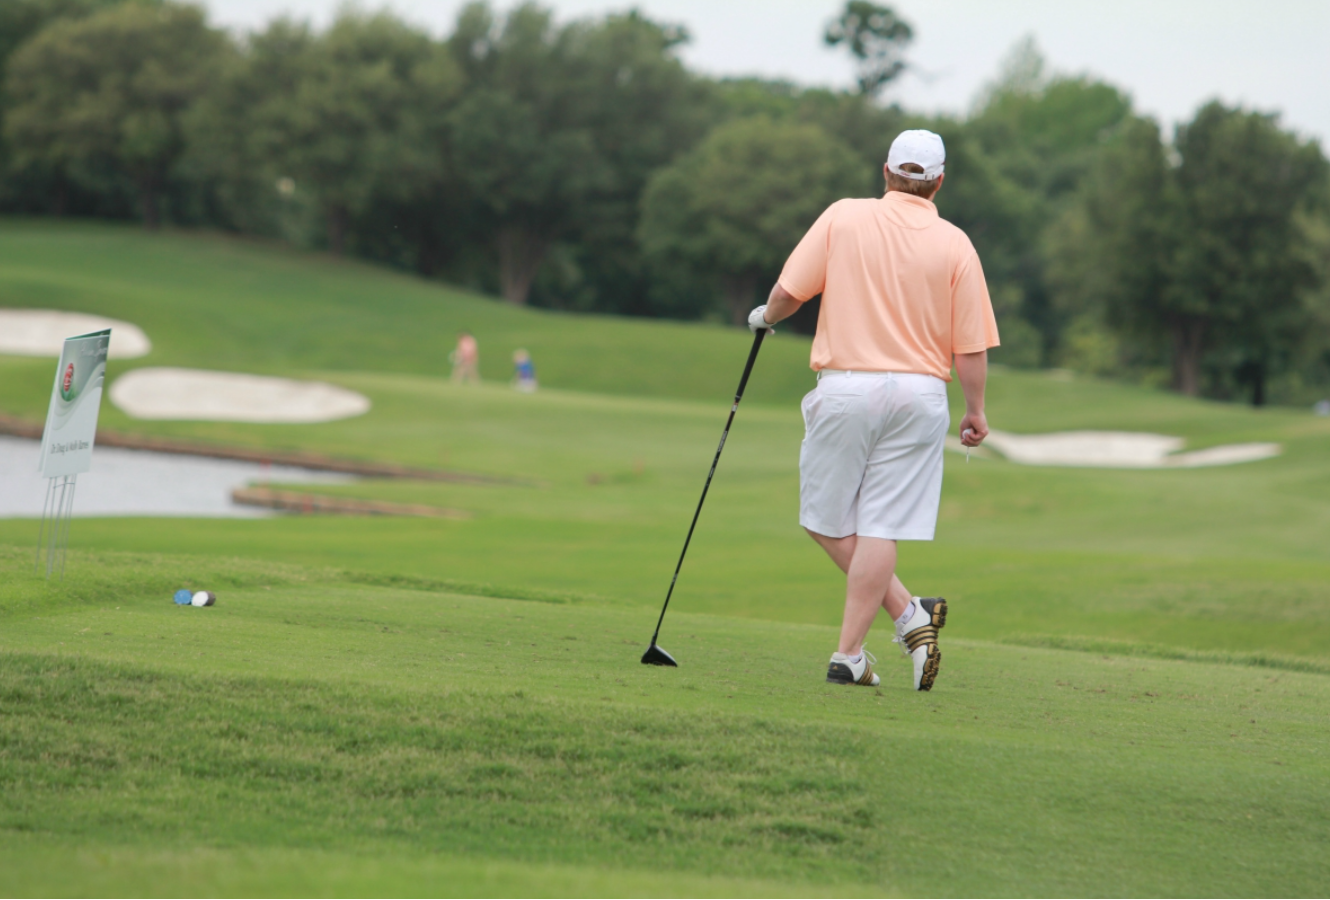 Man on golf course, leaning on golf club; image by Hal Gatewood, via Unsplash.com.